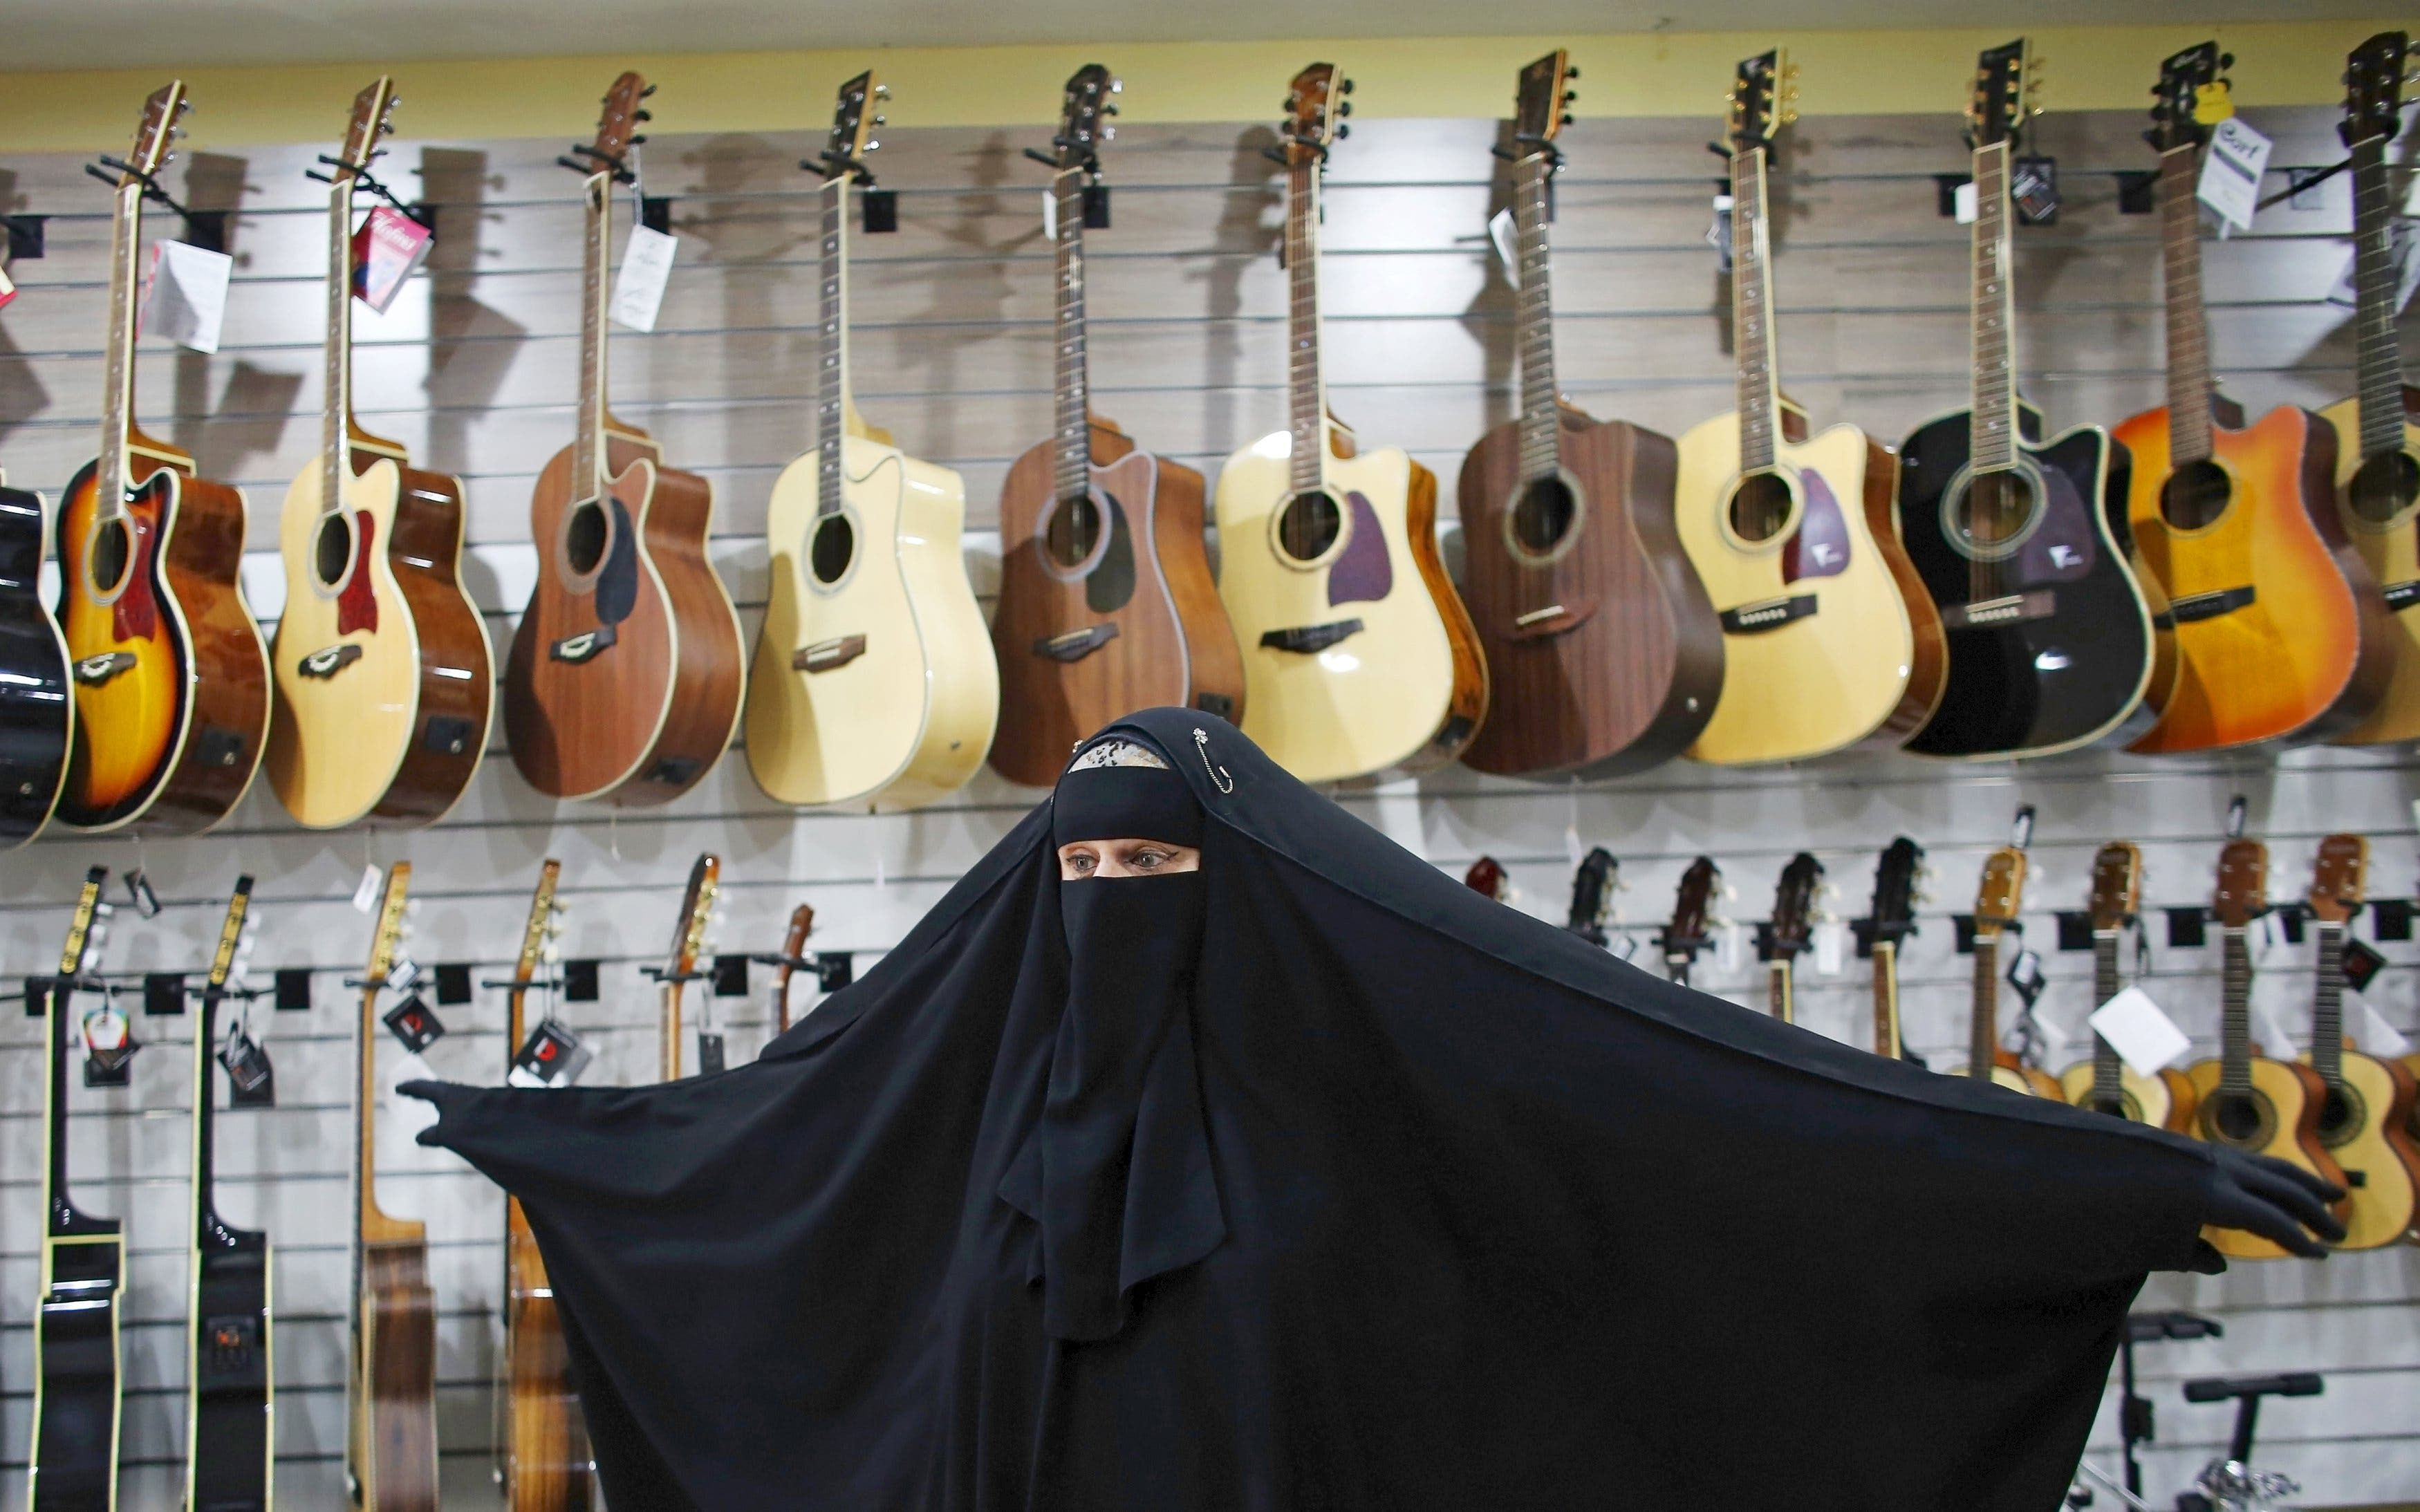 Gisele Marie, a Muslim woman and professional heavy metal musician, gestures in front of a wall of guitars, at a shop selling musical instruments in Sao Paulo August 13, 2015. (Reuters)